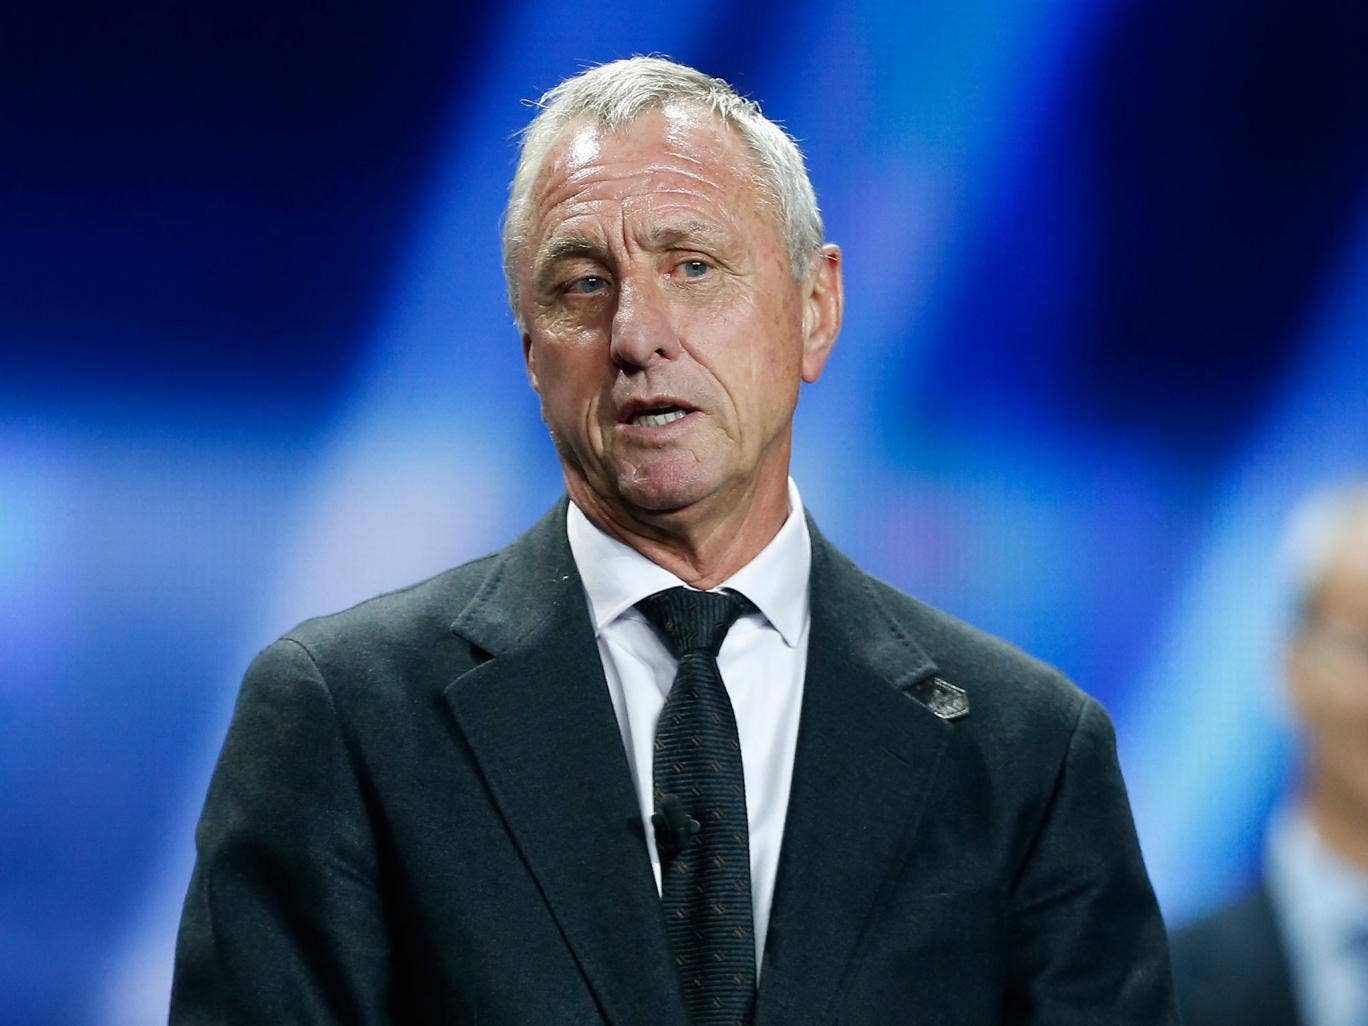 A Dutch newspaper has apologised to Johan Cruyff after bogus report that claimed he was dead went viral